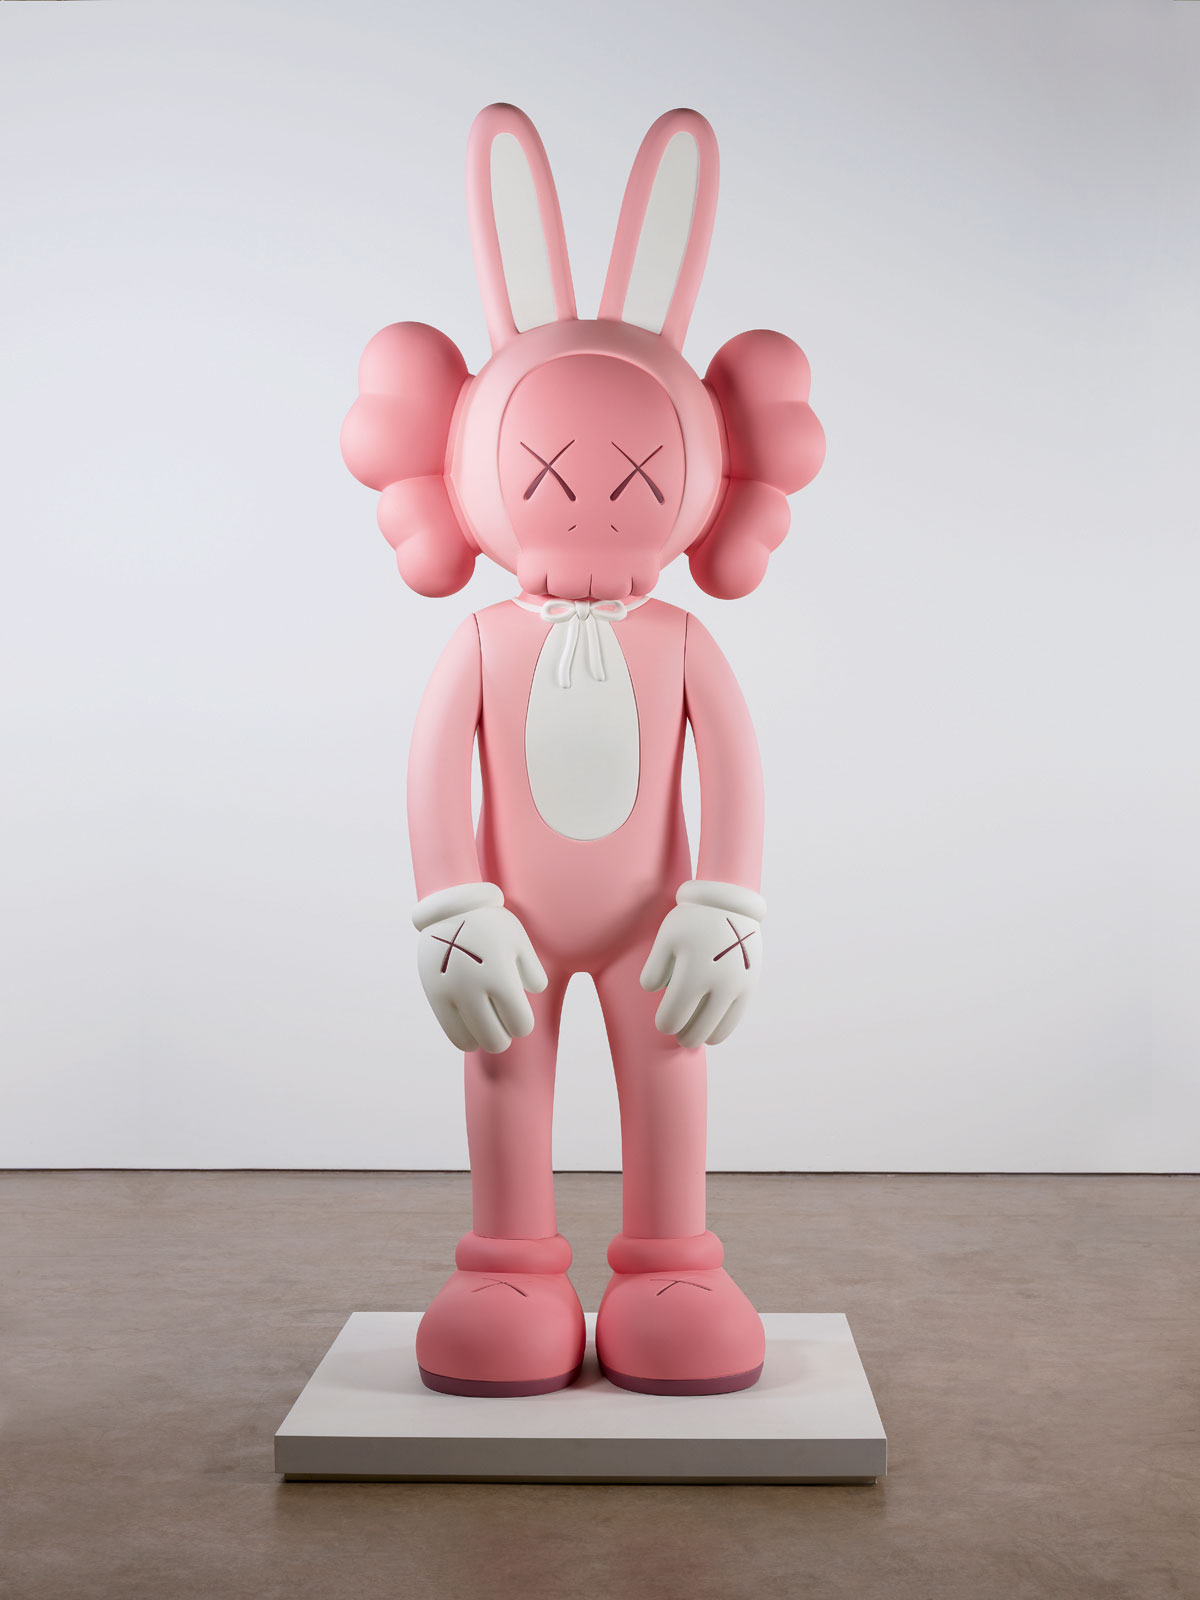 Accomplice, 2010. Courtesy the artist, Galerie Perrotin and YSP. Fibreglass and rubberised paint, 305cm x 121cm x 91cm. Photo © Jonty Wilde.